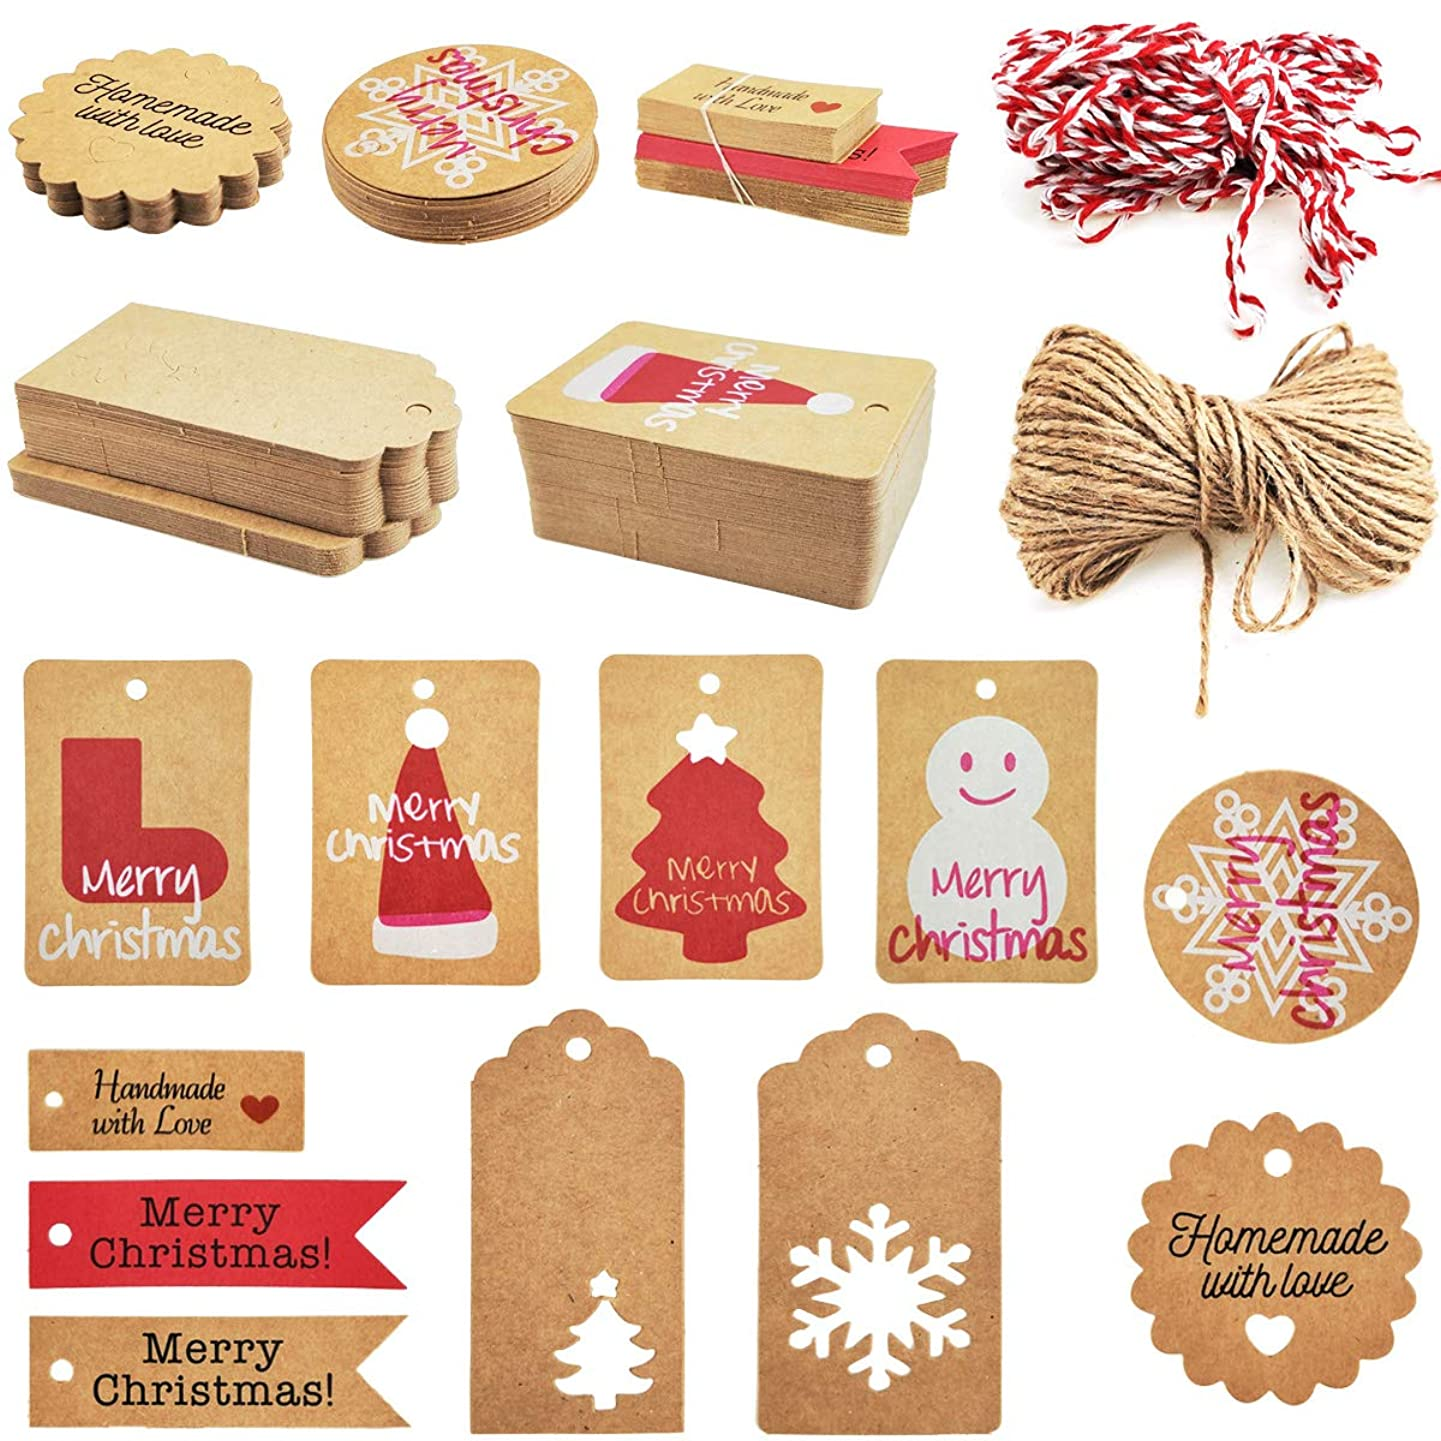 BeautyMood 240PCS 12 Styles Christmas Kraft Paper Tags, Brown Christmas Kraft Gift Tags Hang Labels Xmas Tree Snowflake Reindeer For DIY Arts Crafts Package Name Card Merchandise Tags With 30 Meters T